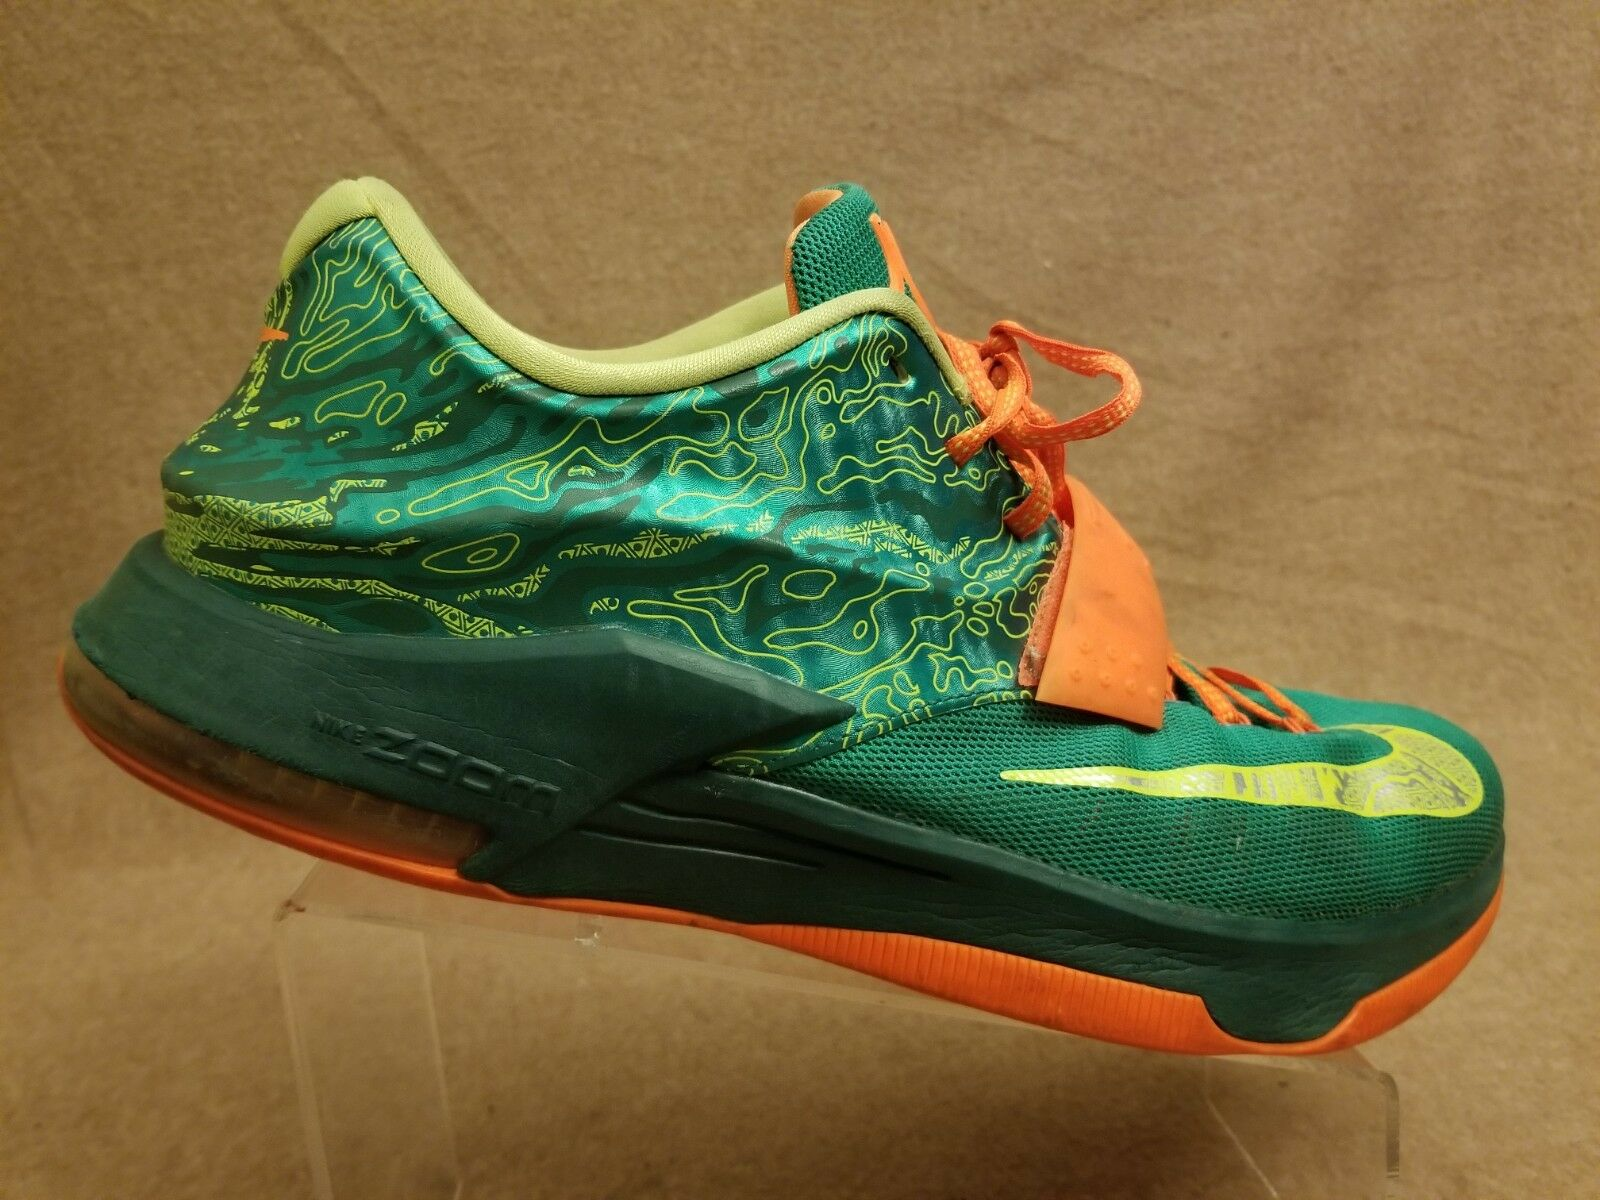 c54443963d57ce Nike 653996-303 KD 7 Kevin Durant Men Weatherman Emerald Green Basketball  Sz 14